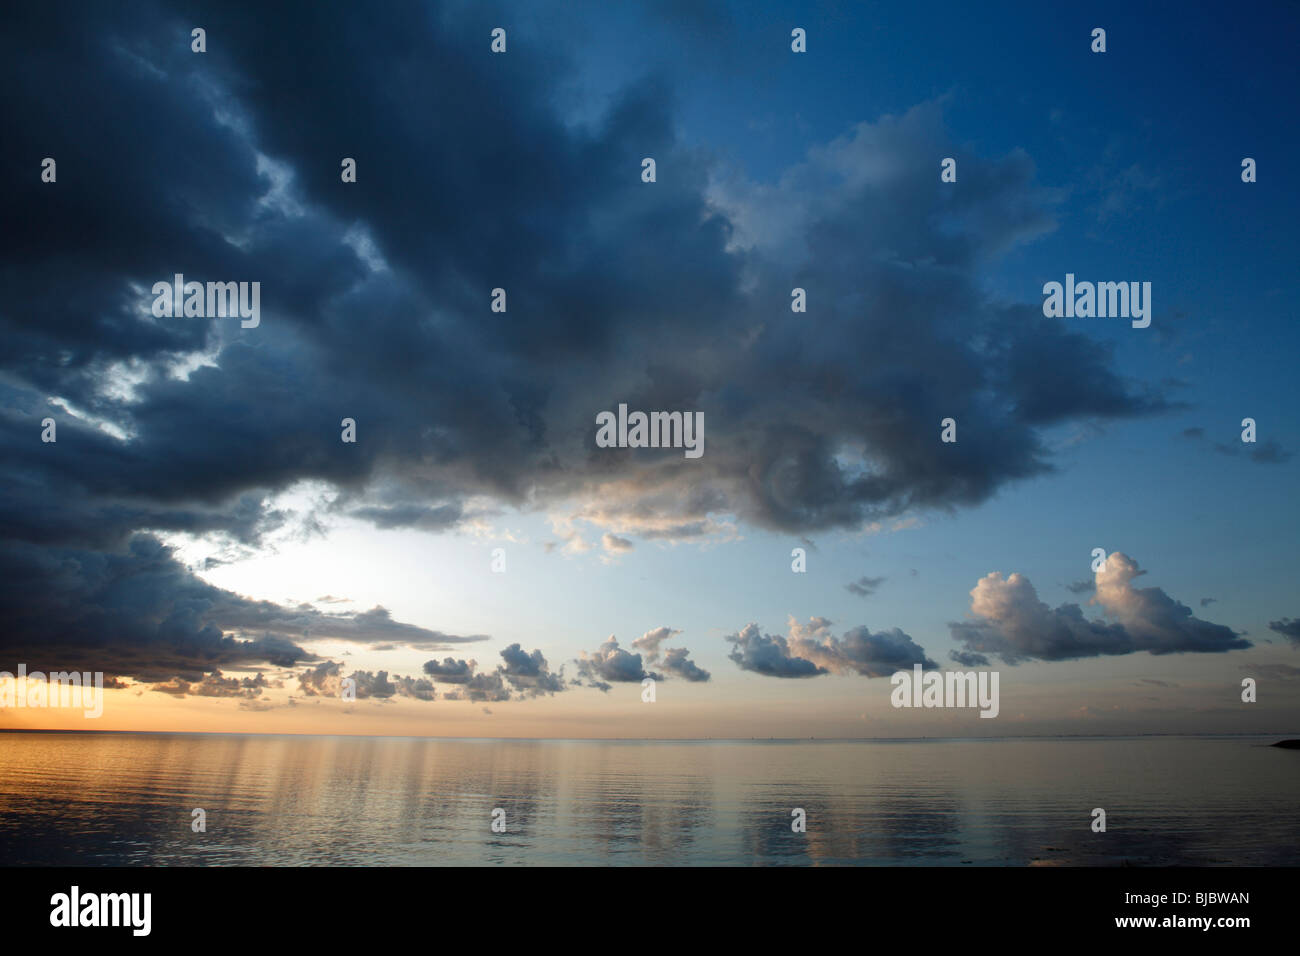 Thunder Clouds over Wadden Sea at Dawn, Texel Island, Holland - Stock Image